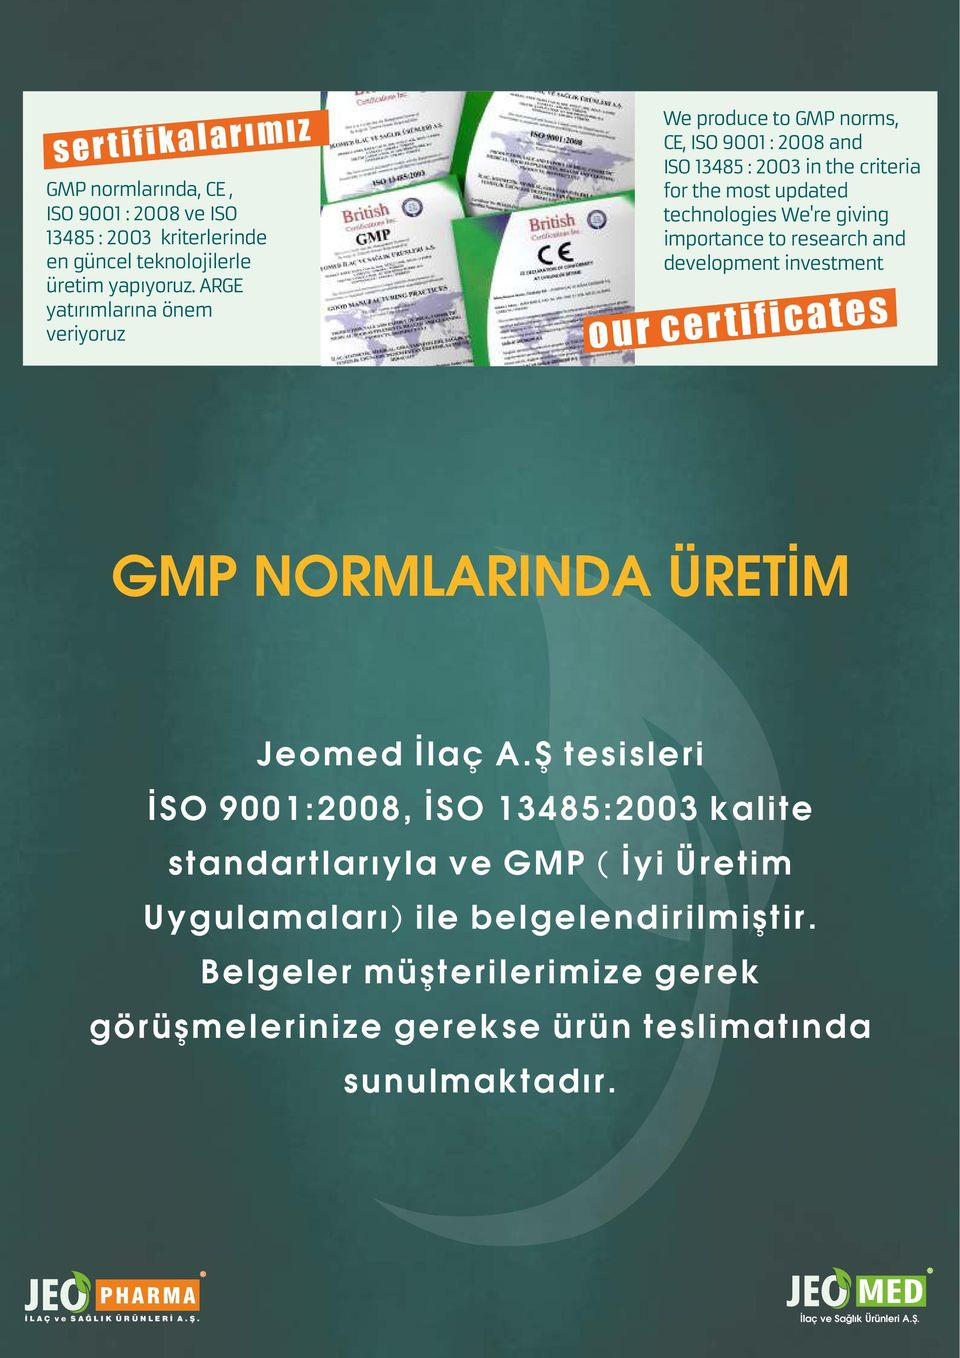 We're giving importance to research and development investment our cer tificates GMP NORMLARINDA ÜRETİM Jeomed İlaç A.